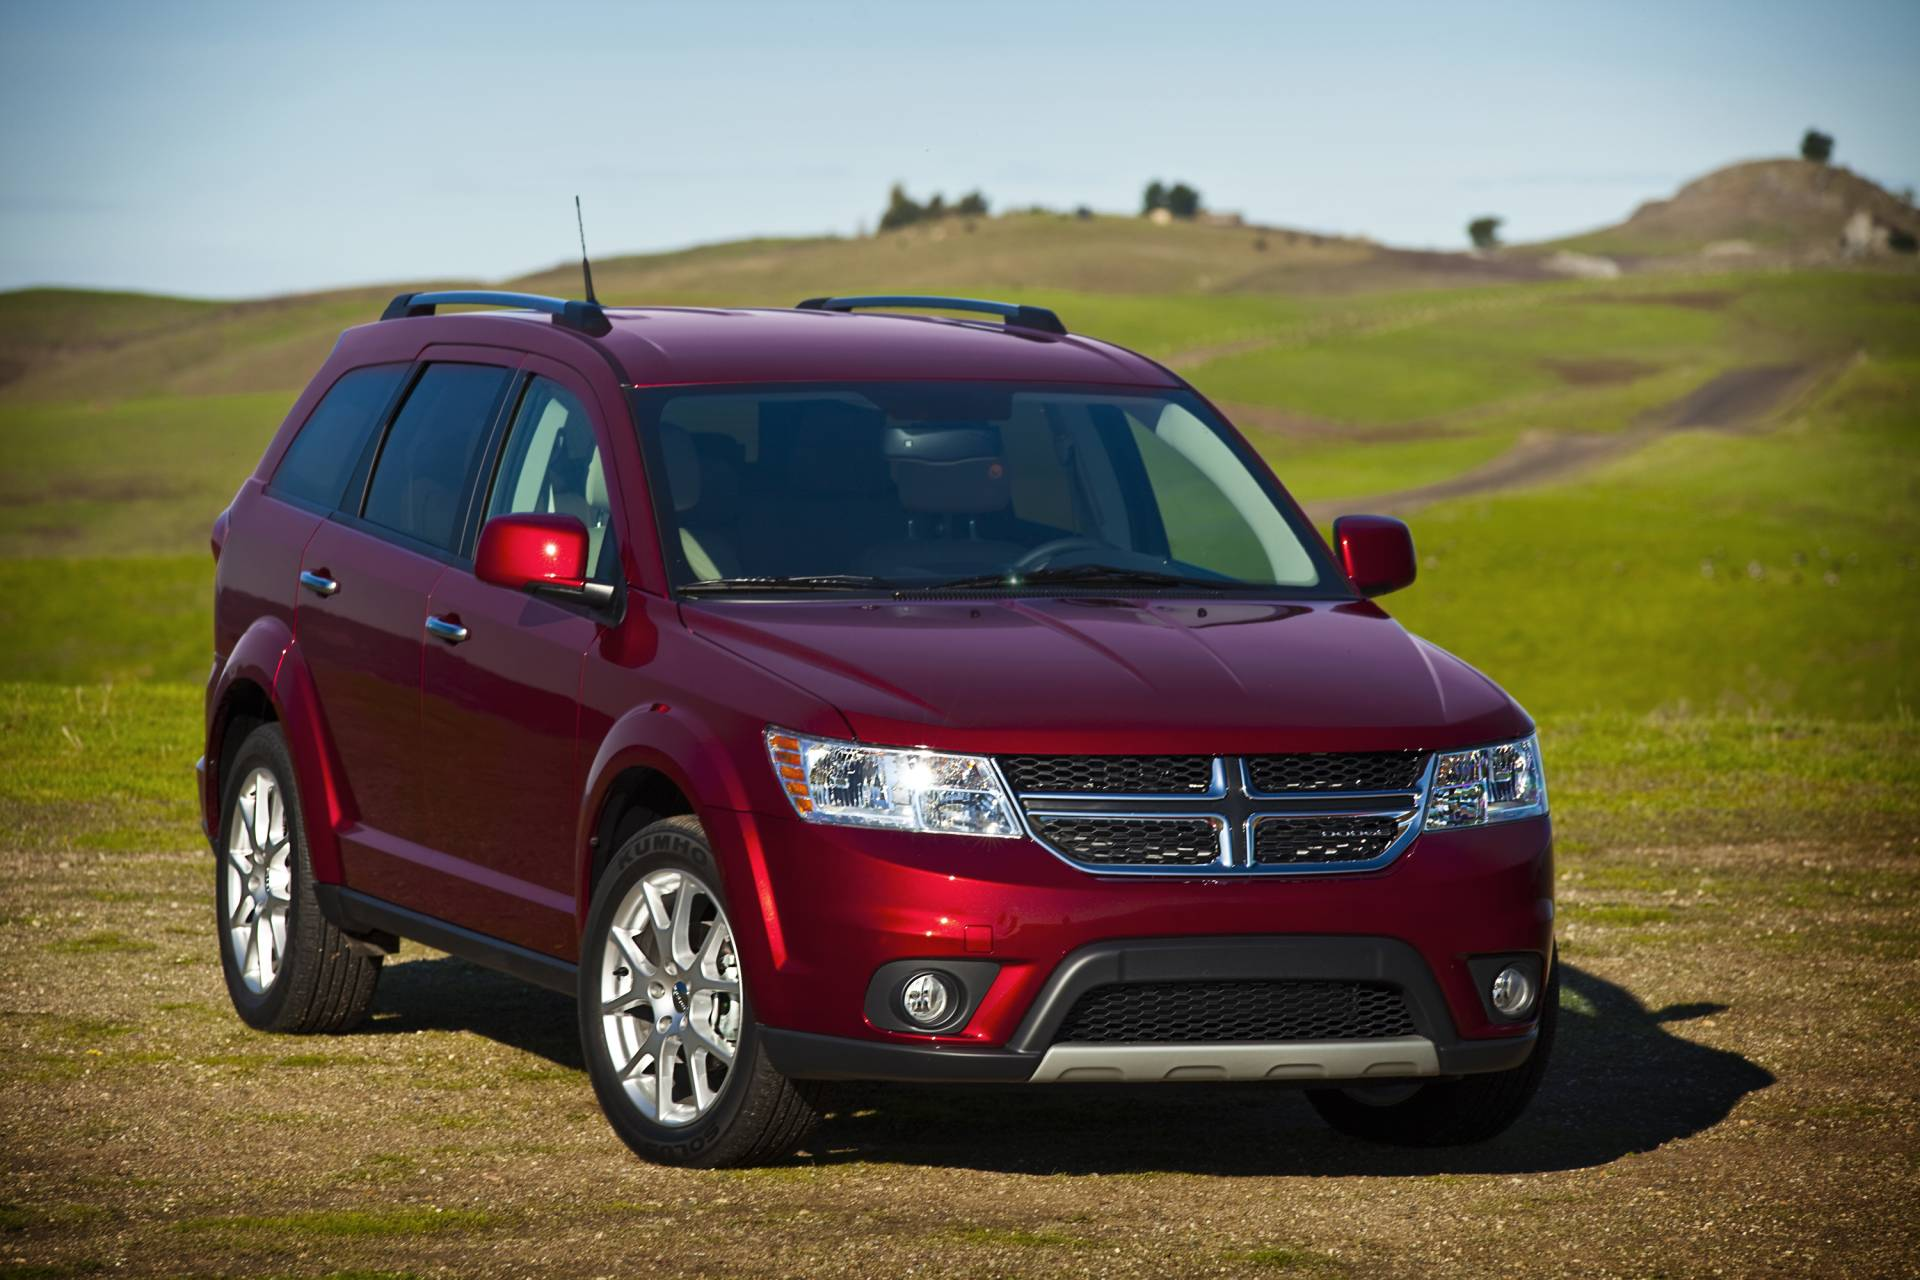 2013 Dodge Journey News and Information | conceptcarz.com